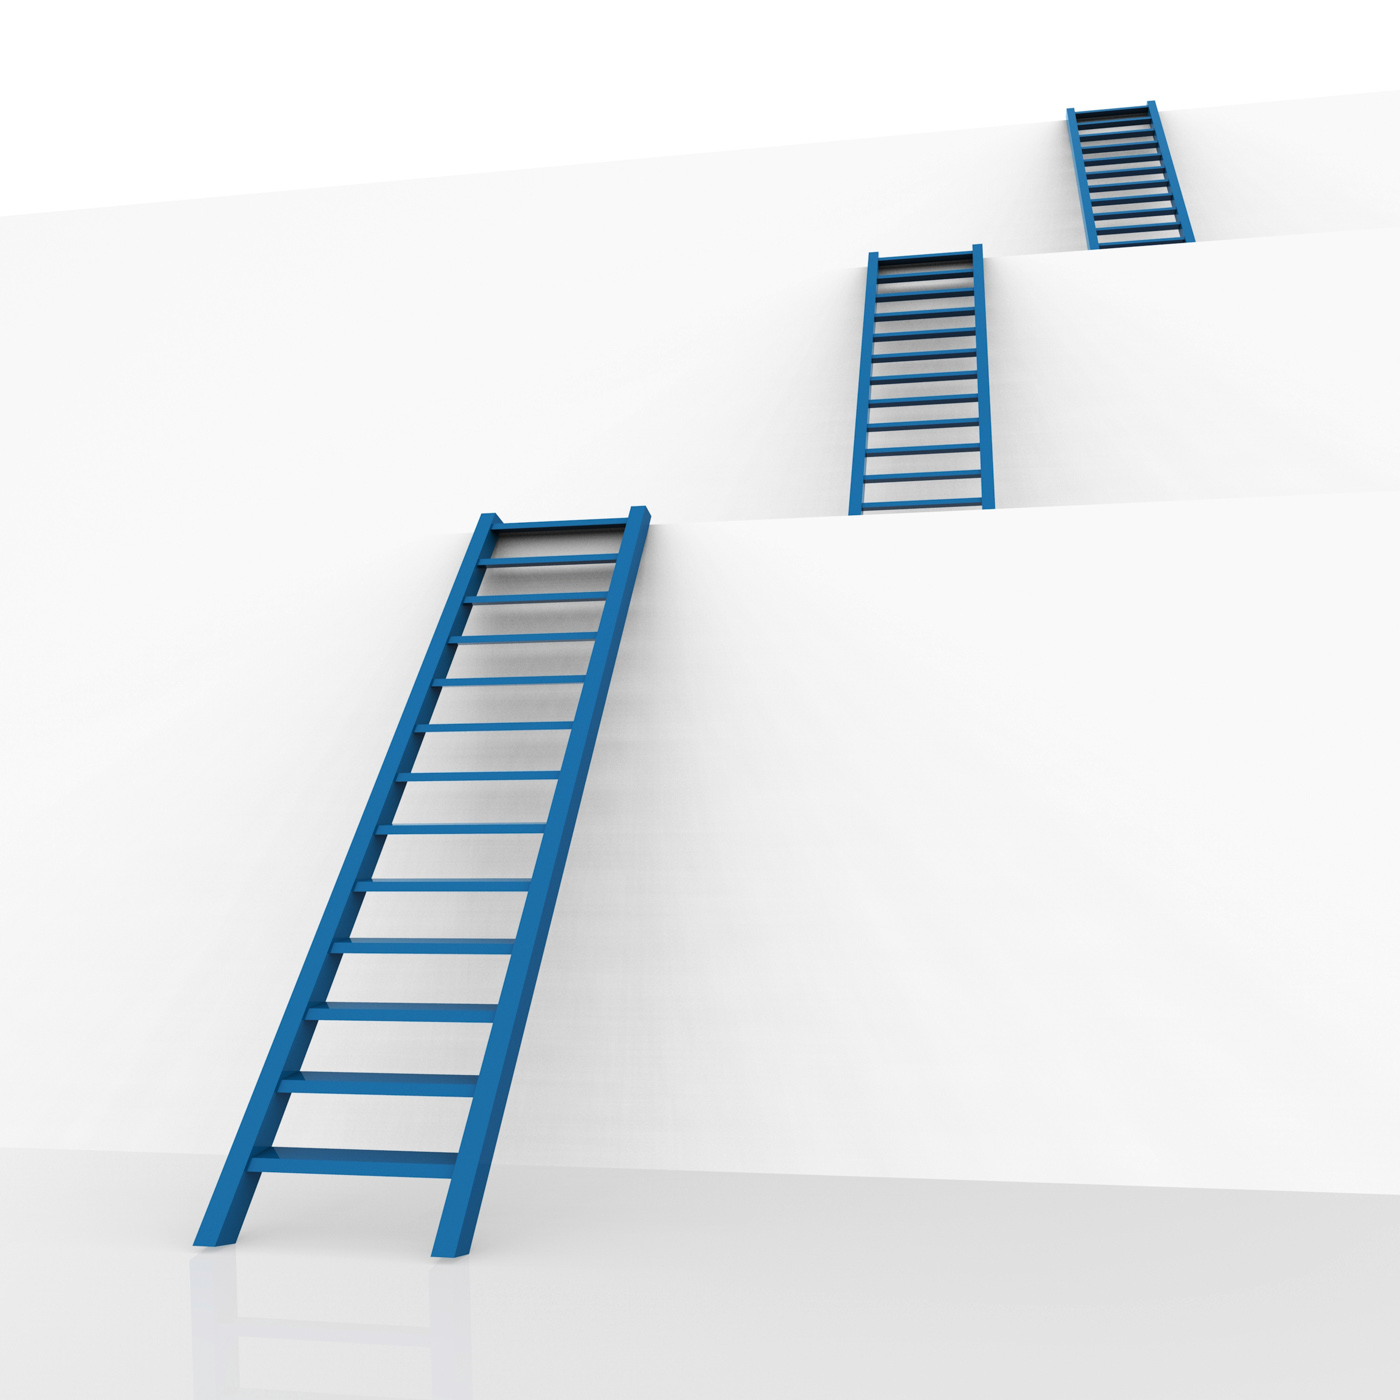 Ladders Vision Represents Conquering Adversity And Aspire, Aspirations, Obstacle, Upward, Step, HQ Photo